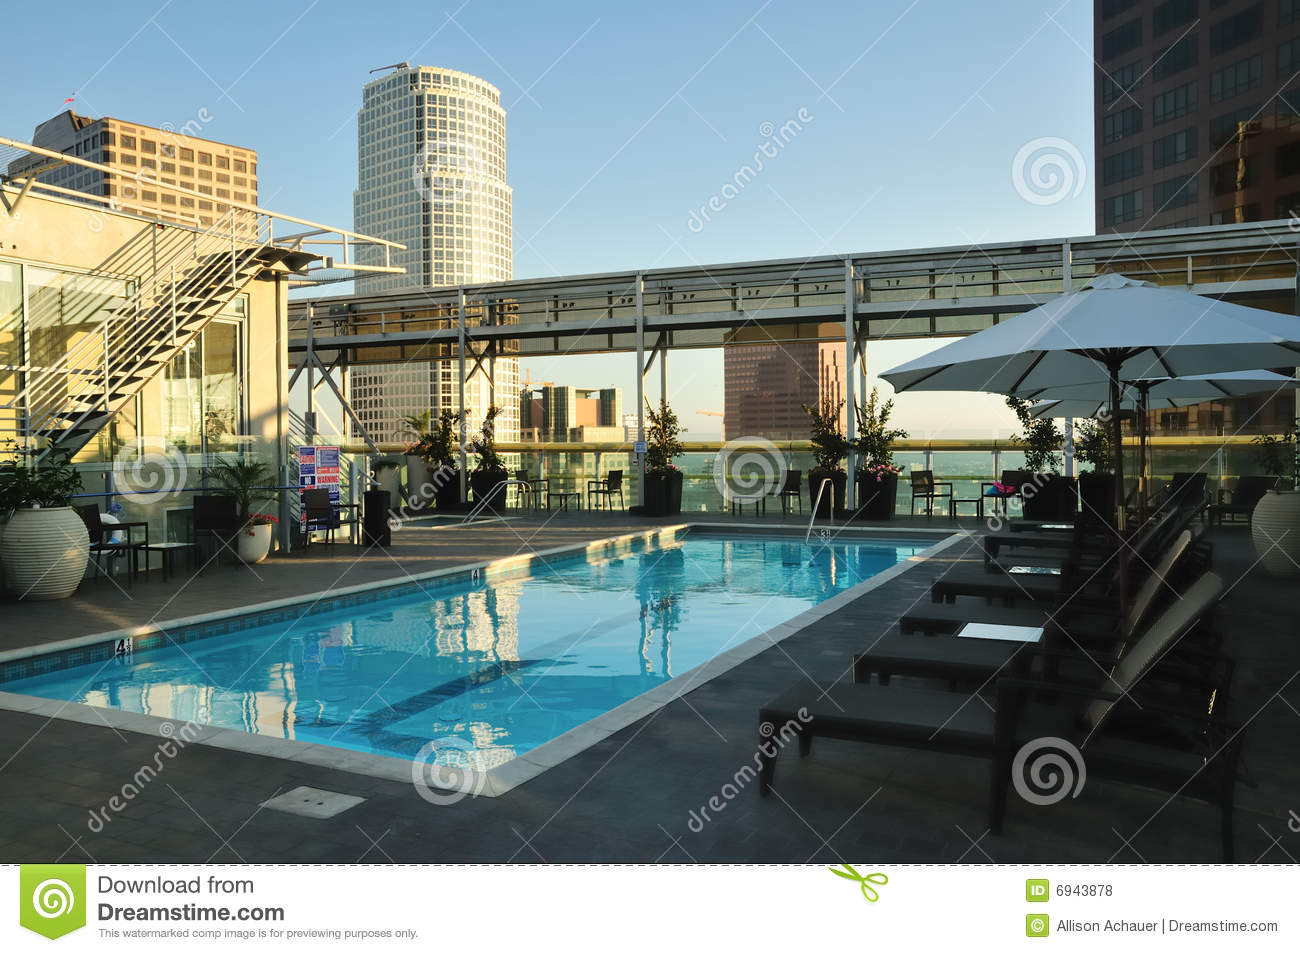 Skyscraper and pool royalty free stock photos image 6943878 - Swimming pool on top of skyscraper ...